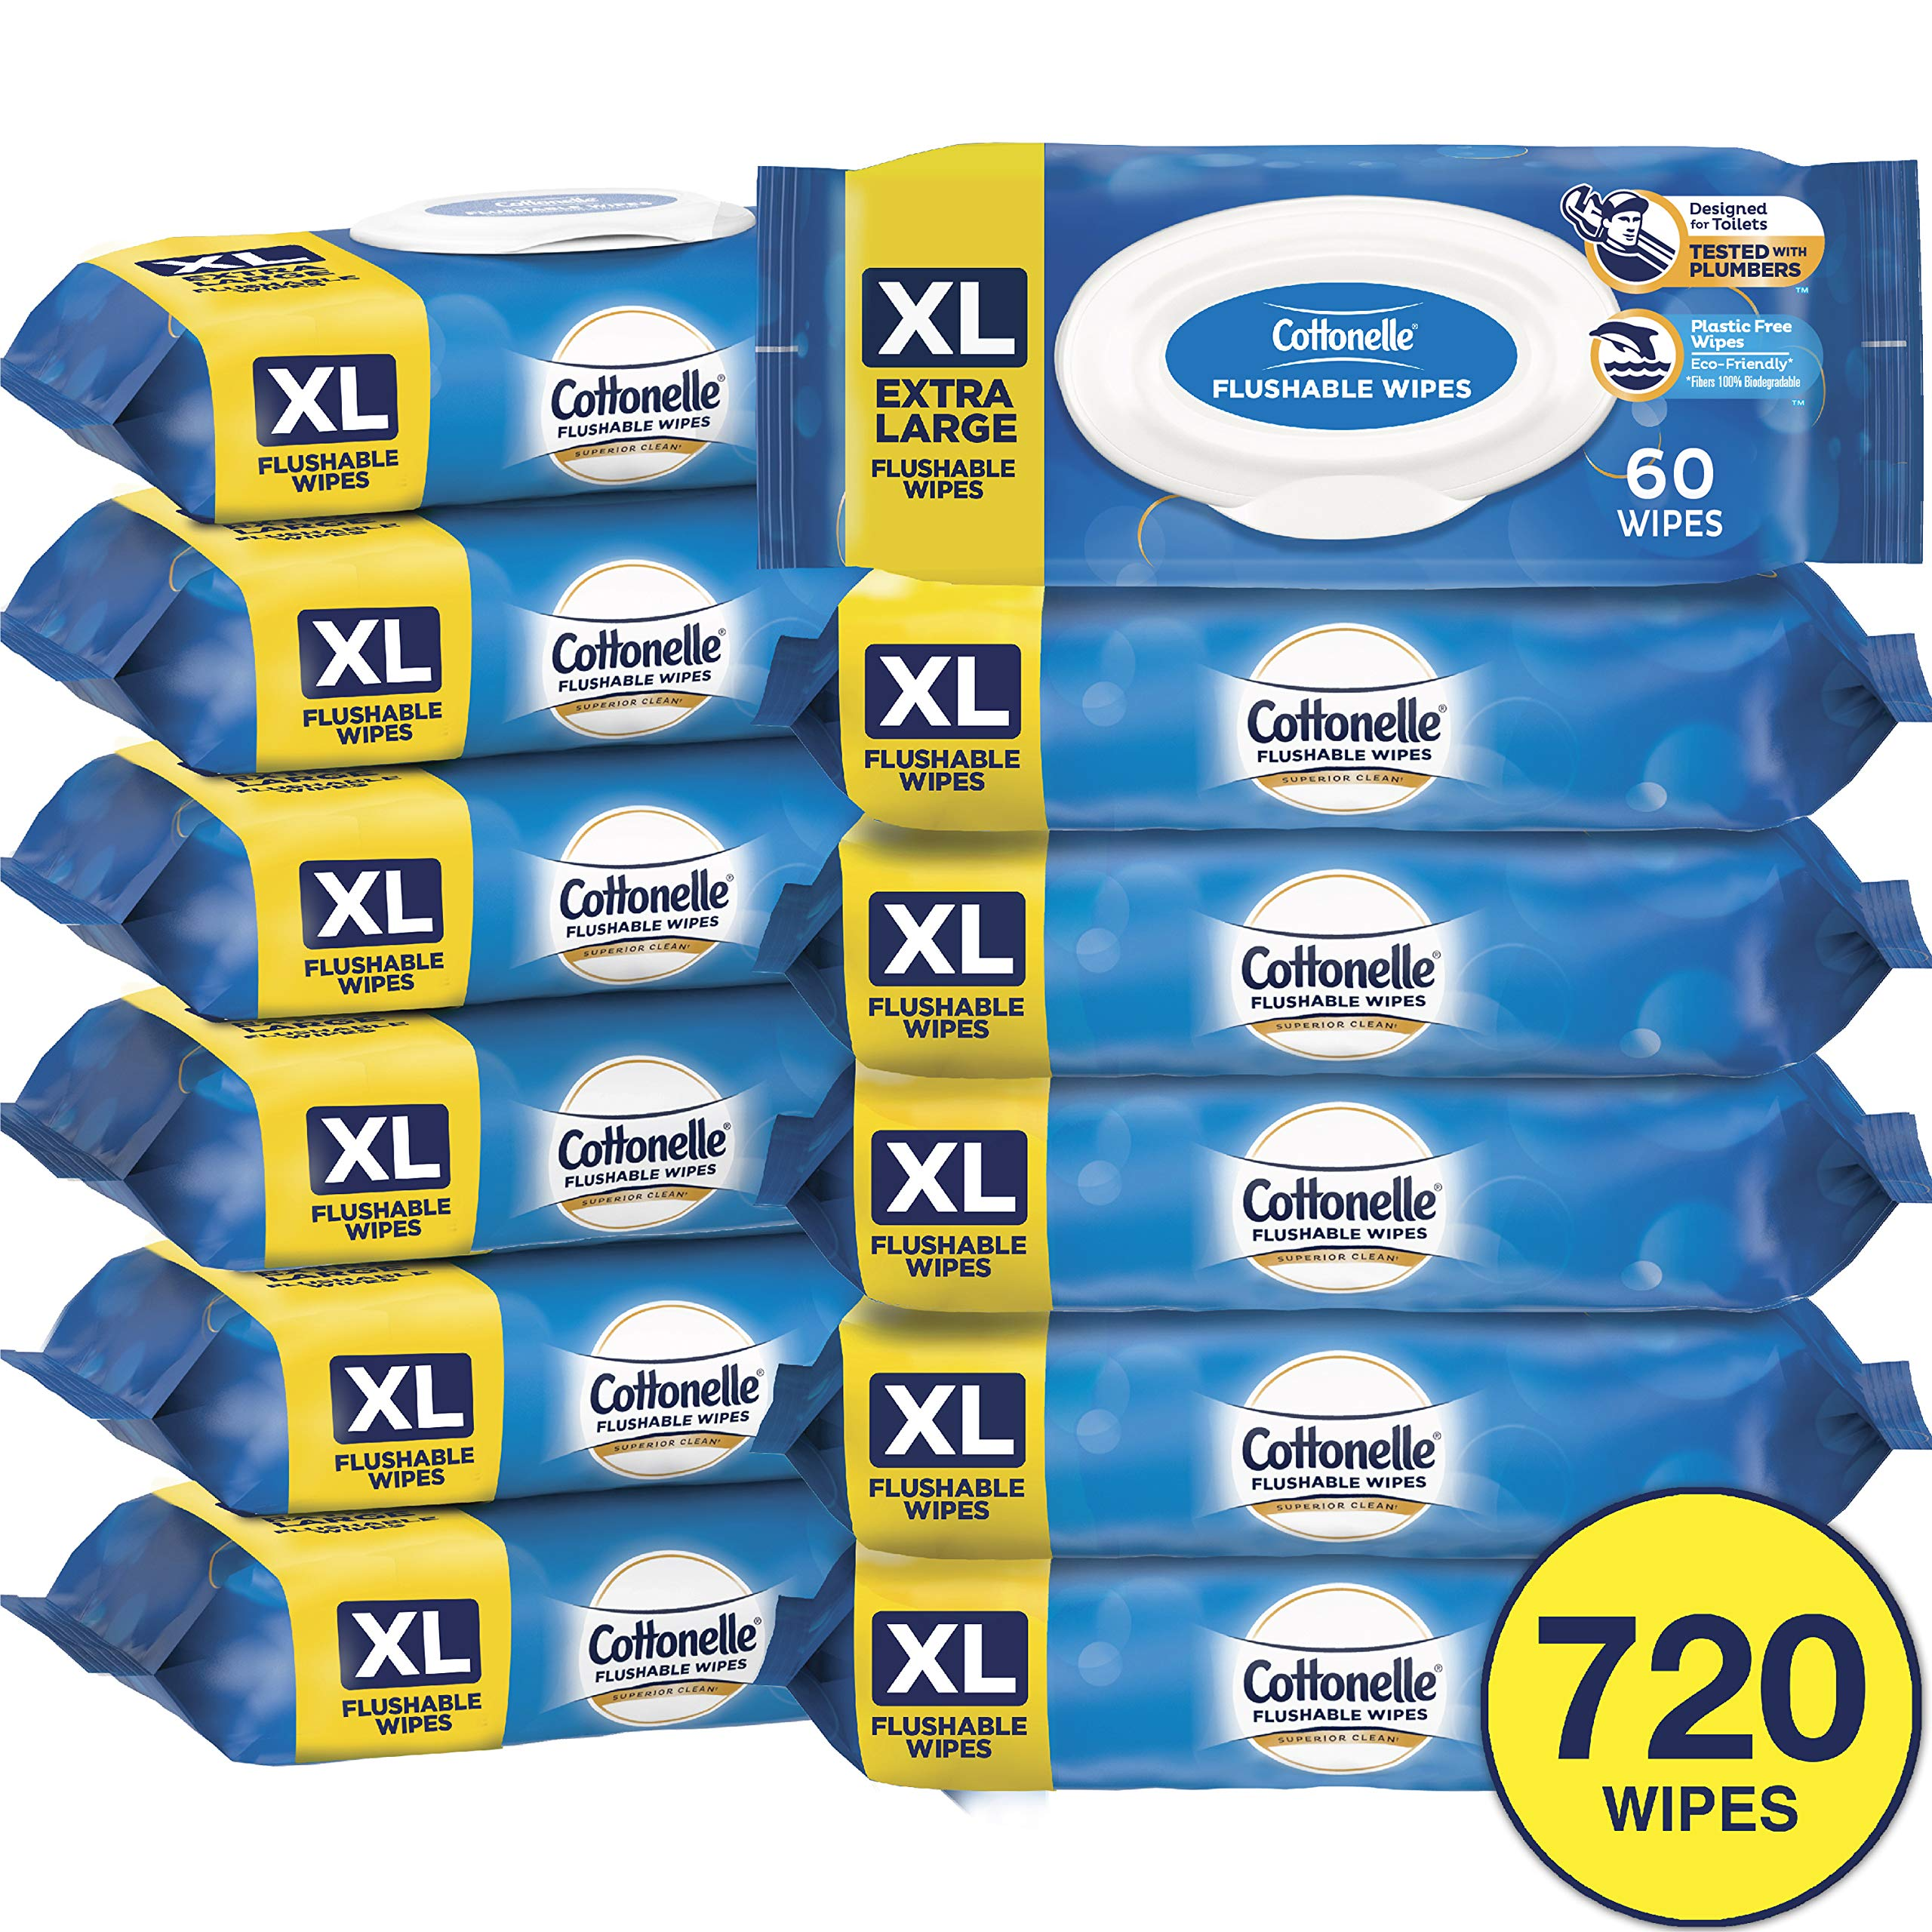 Cottonelle Extra Large Flushable Wet Wipes, Unscented, 60 Wipes per Pack, 12 Packs by Cottonelle